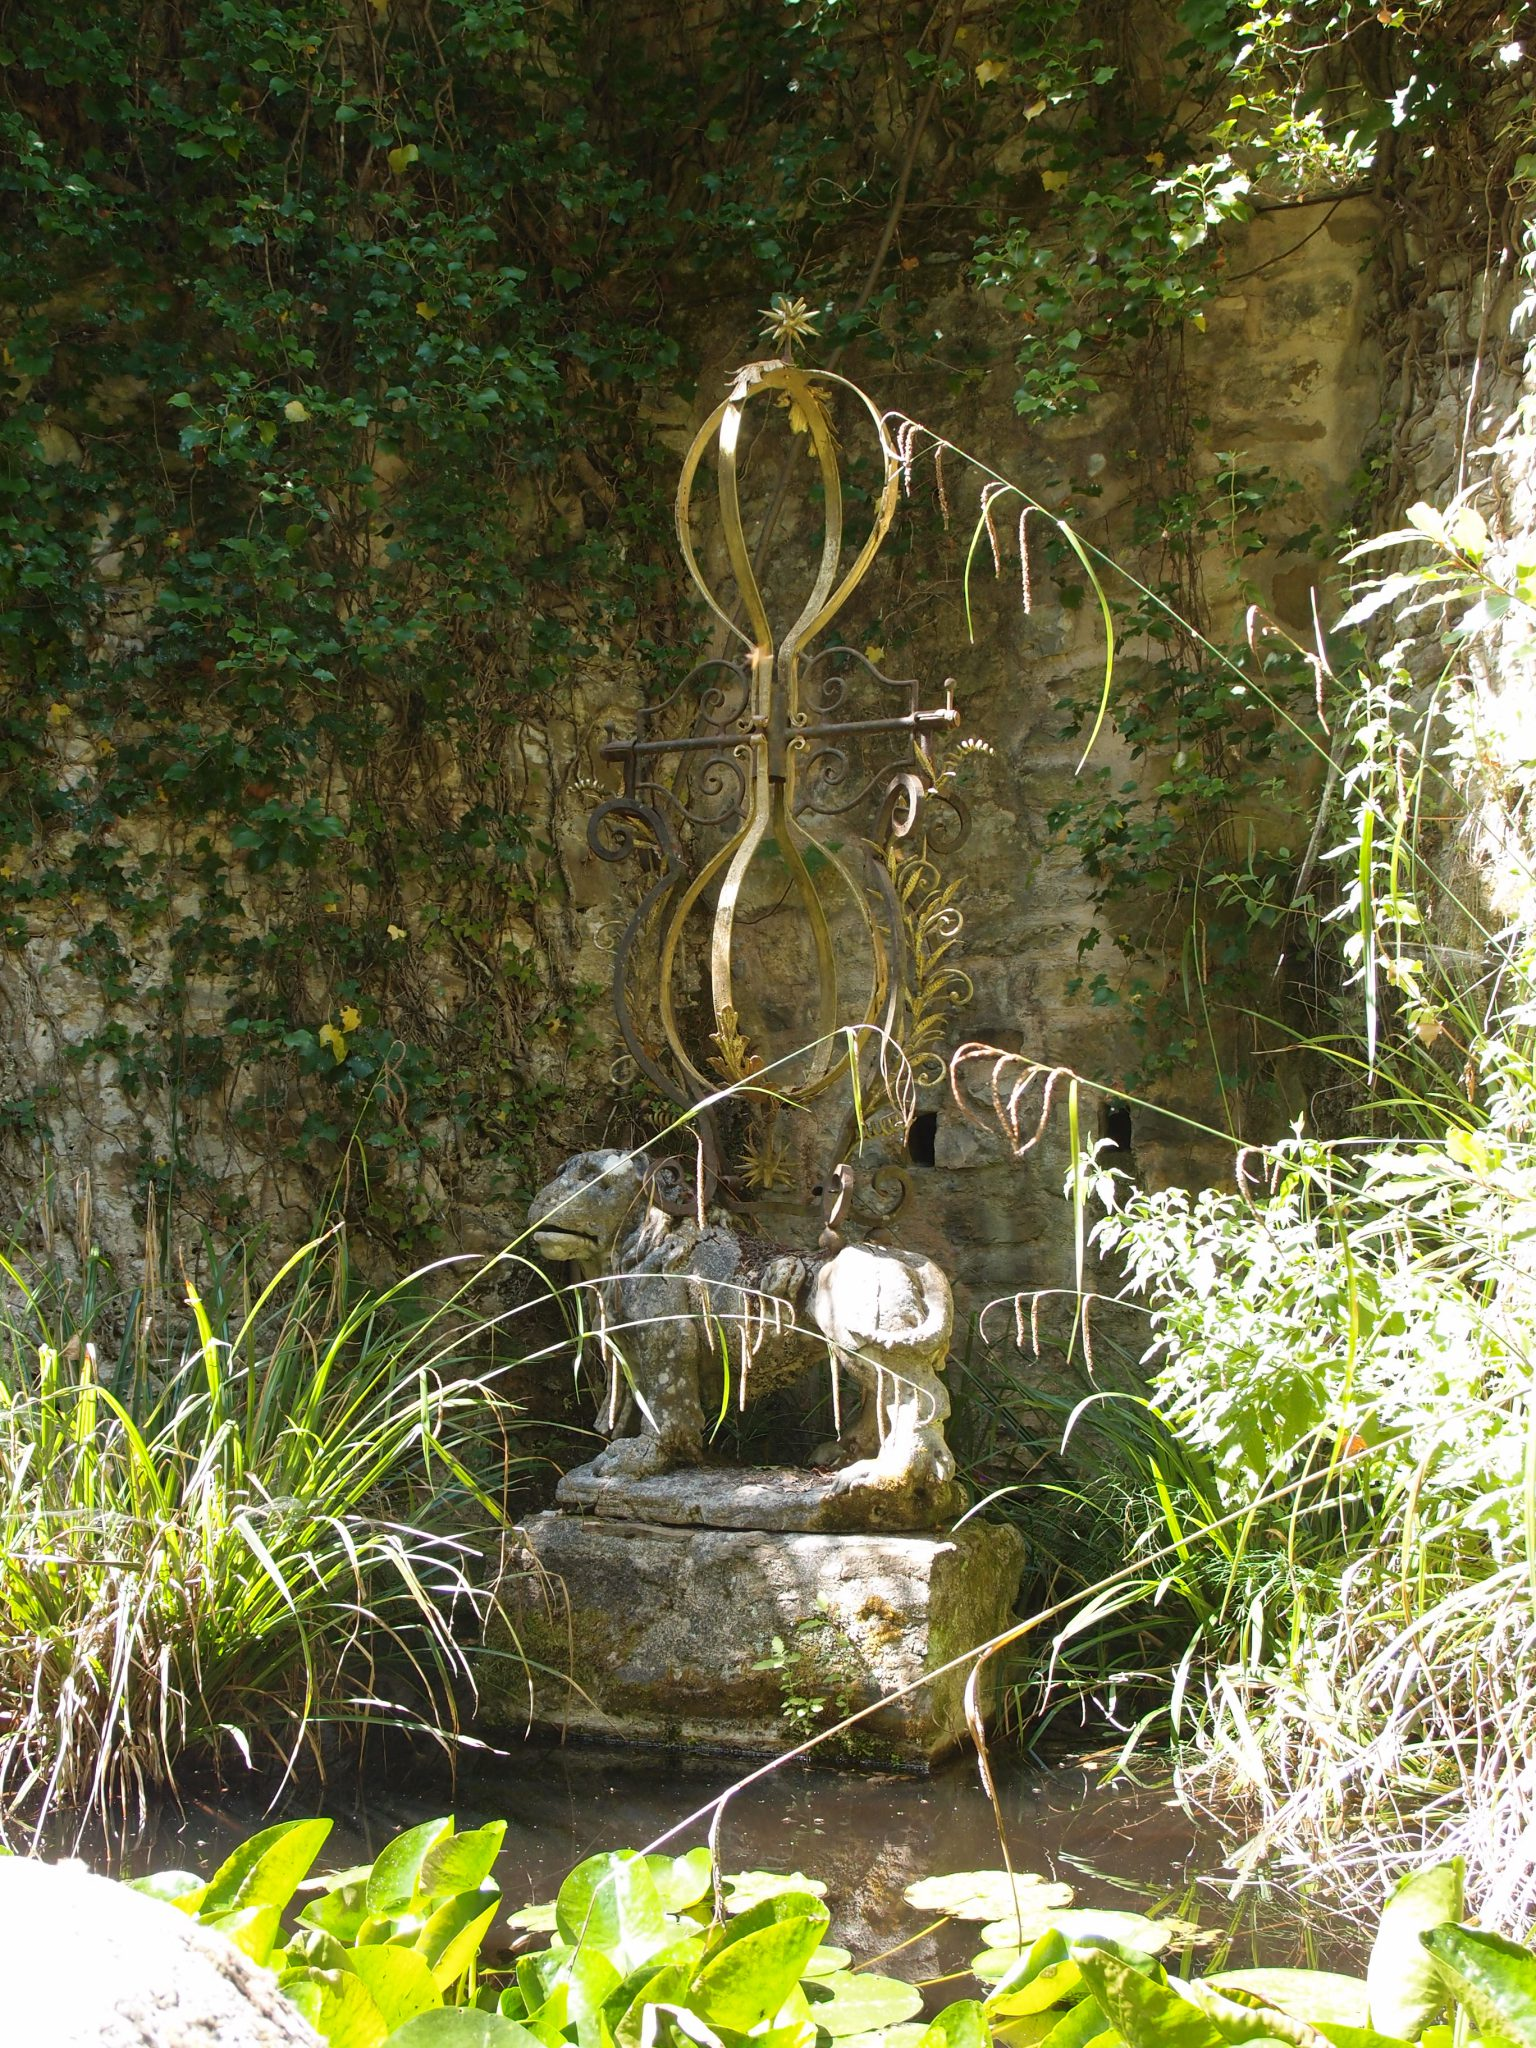 A hybrid ornament --ancient statue with new brass filigrees -- decorates the Lily Pond.